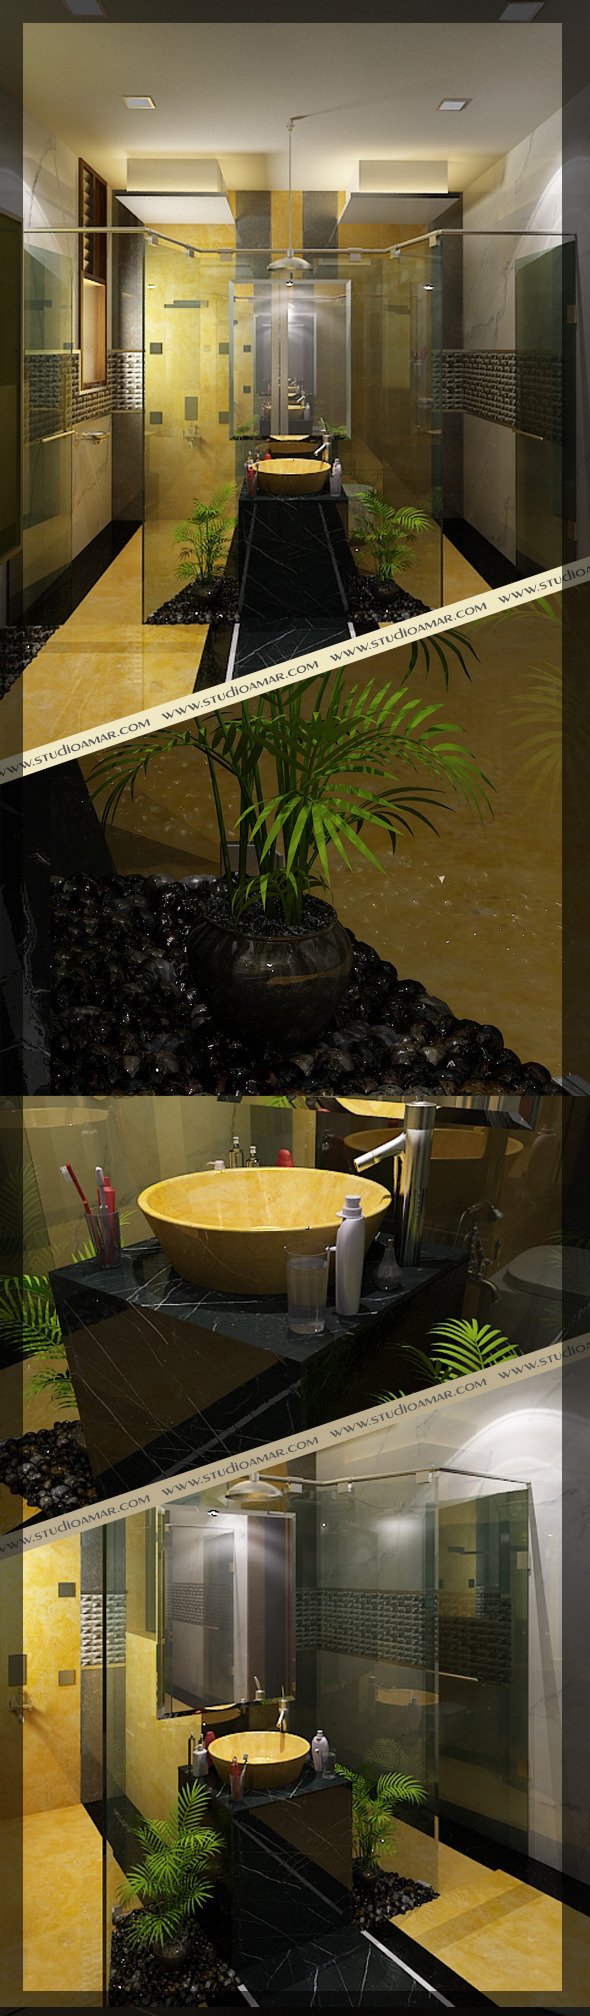 3DOcean Realistic Bathroom 118 5207613